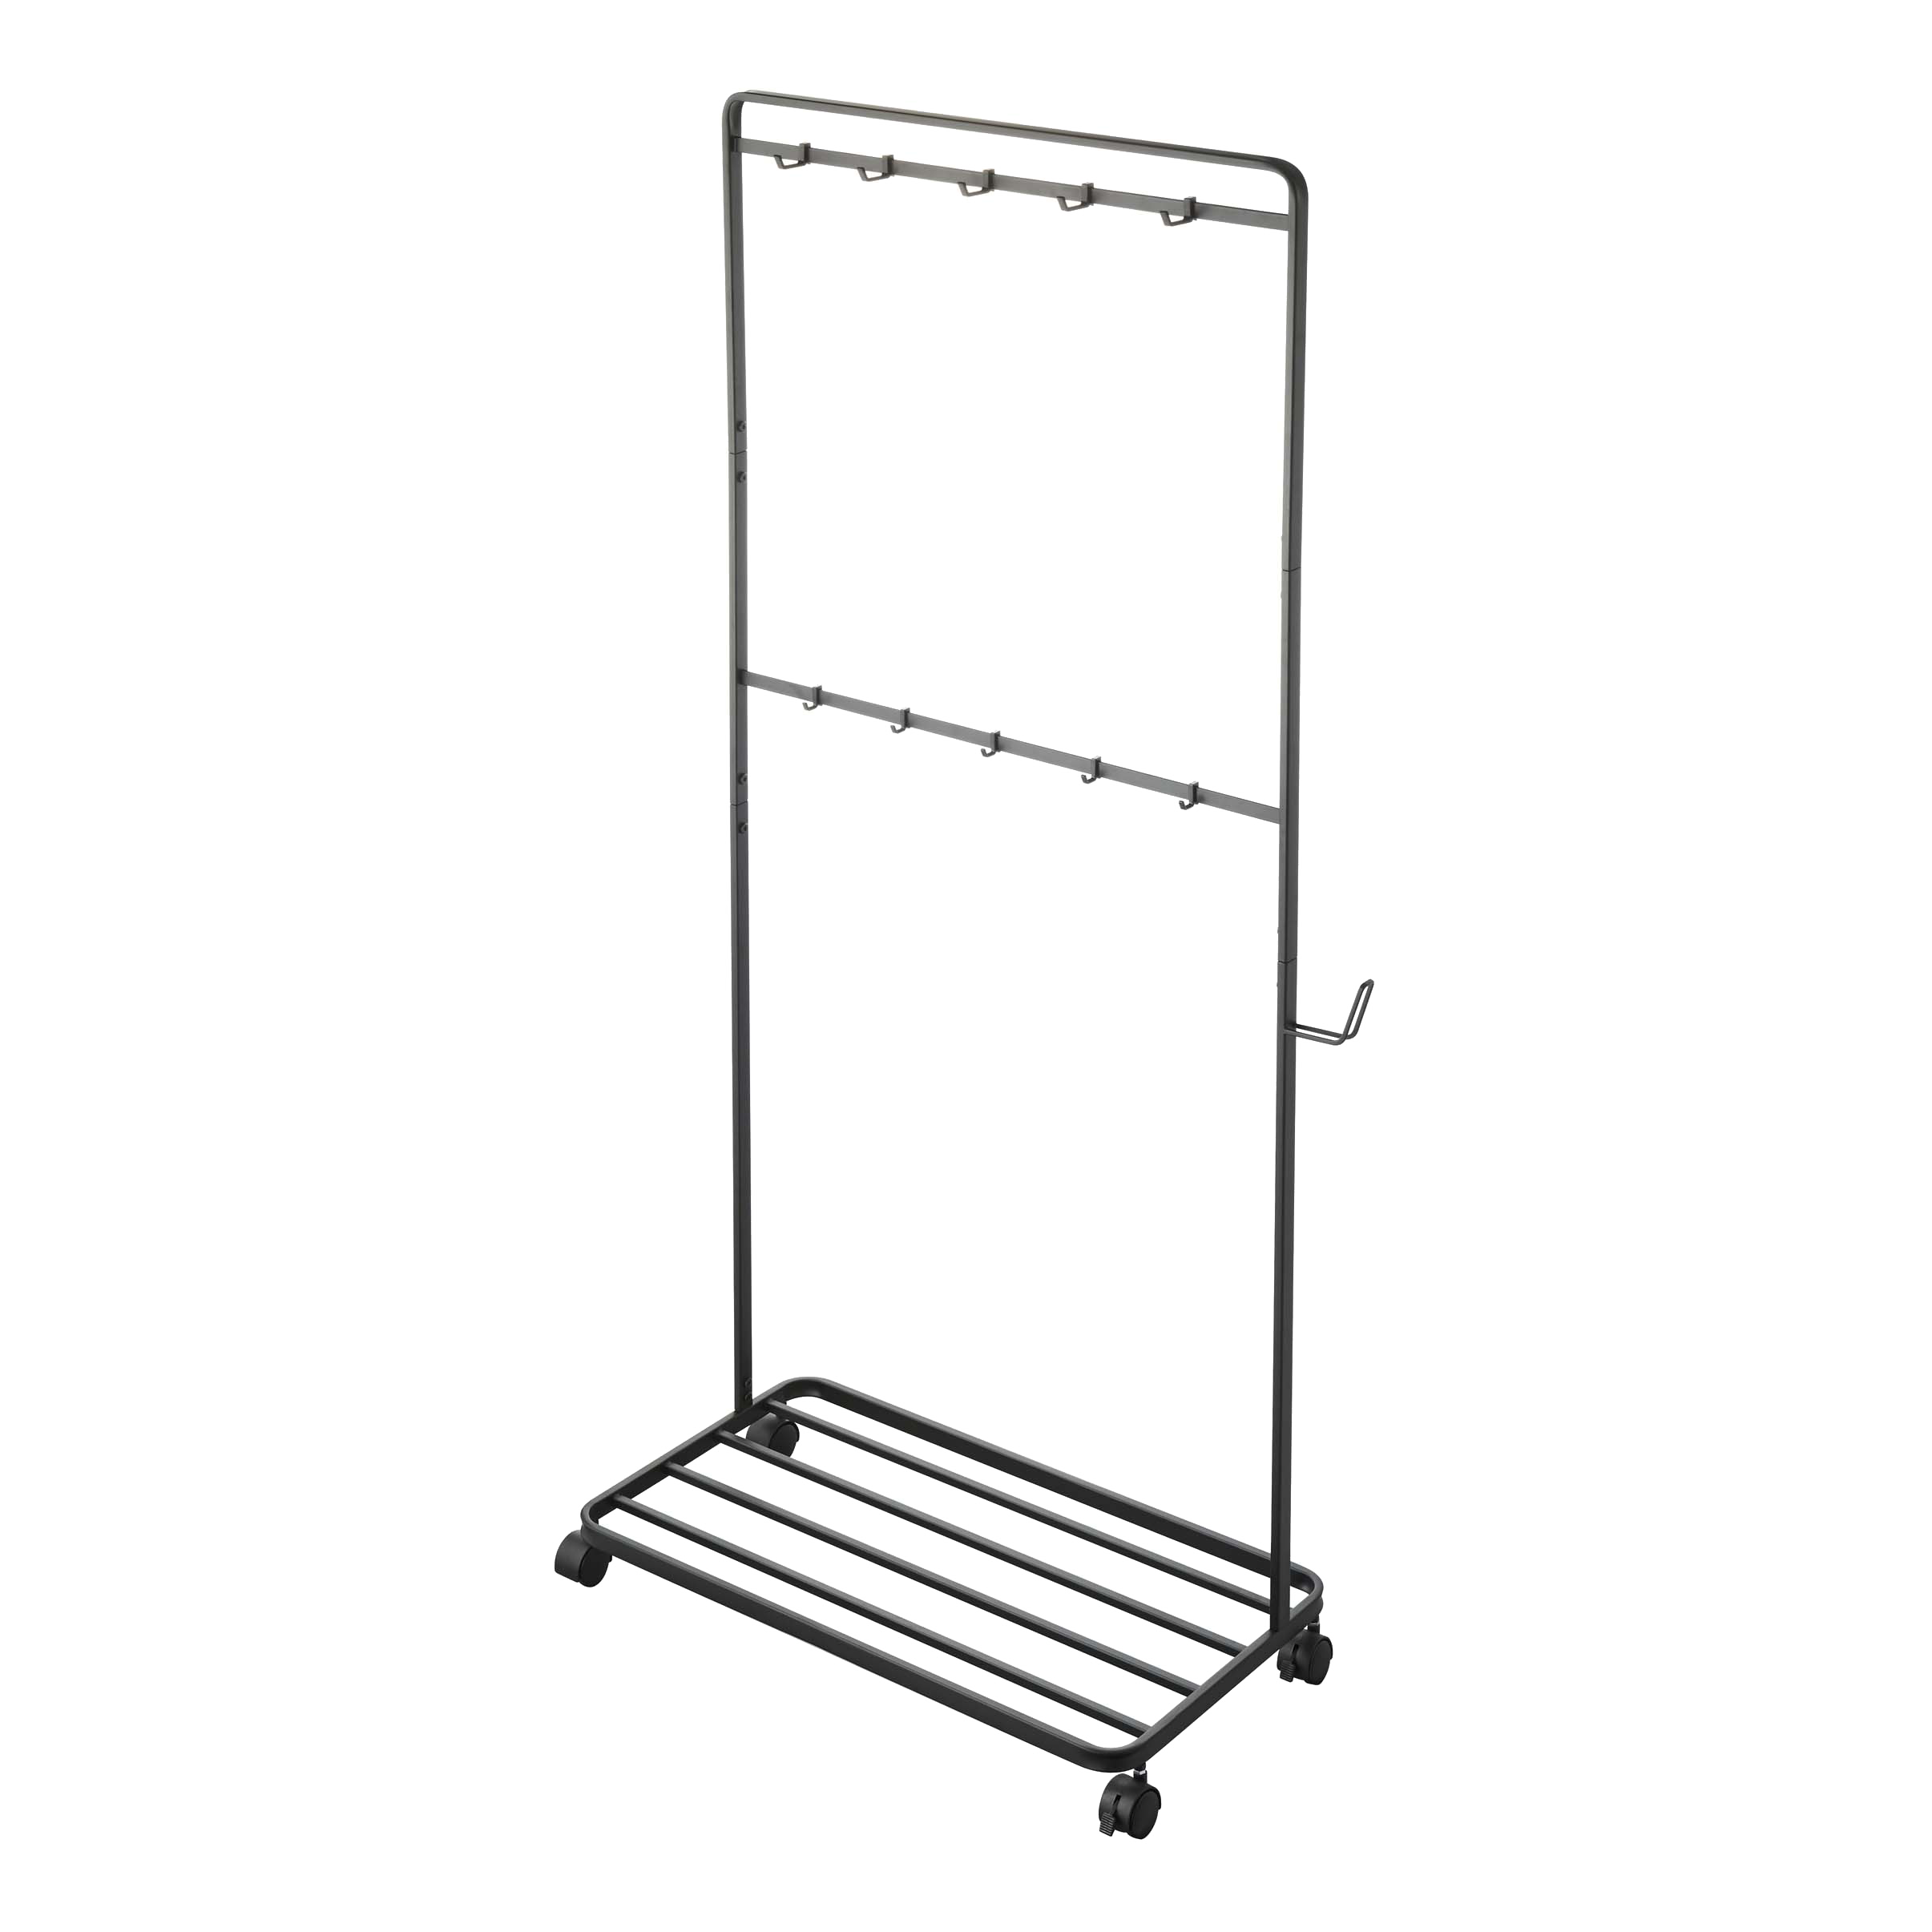 Rolling Cleaning Supplies Rack In 2020 Cleaning Supplies Cleaning Cleaning Cart